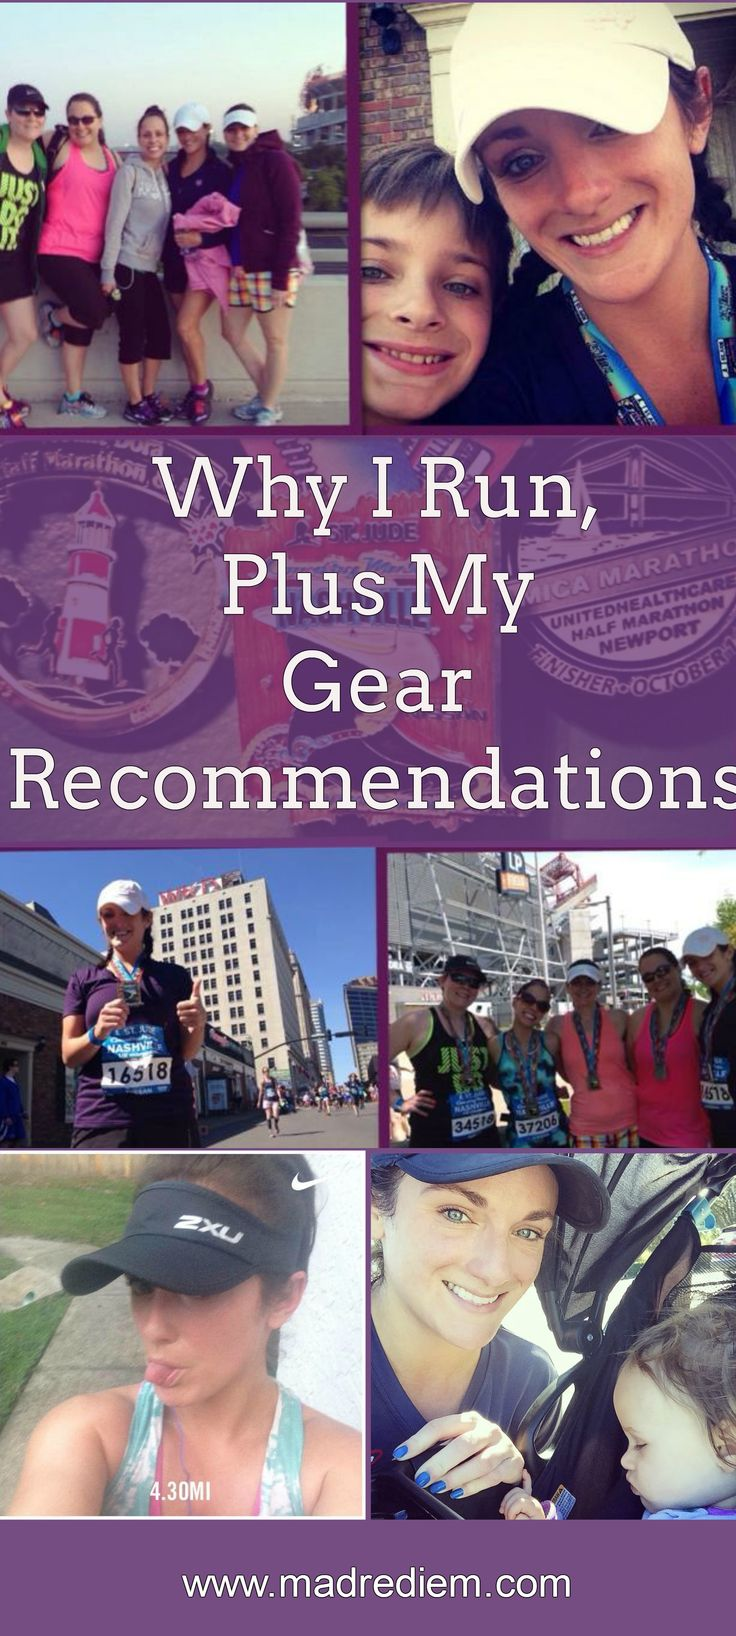 Why I Run, Plus My Gear Recommendations - just some of the reasons I force myself to run even when I'm not feeling it that day, along with my favorite gear.